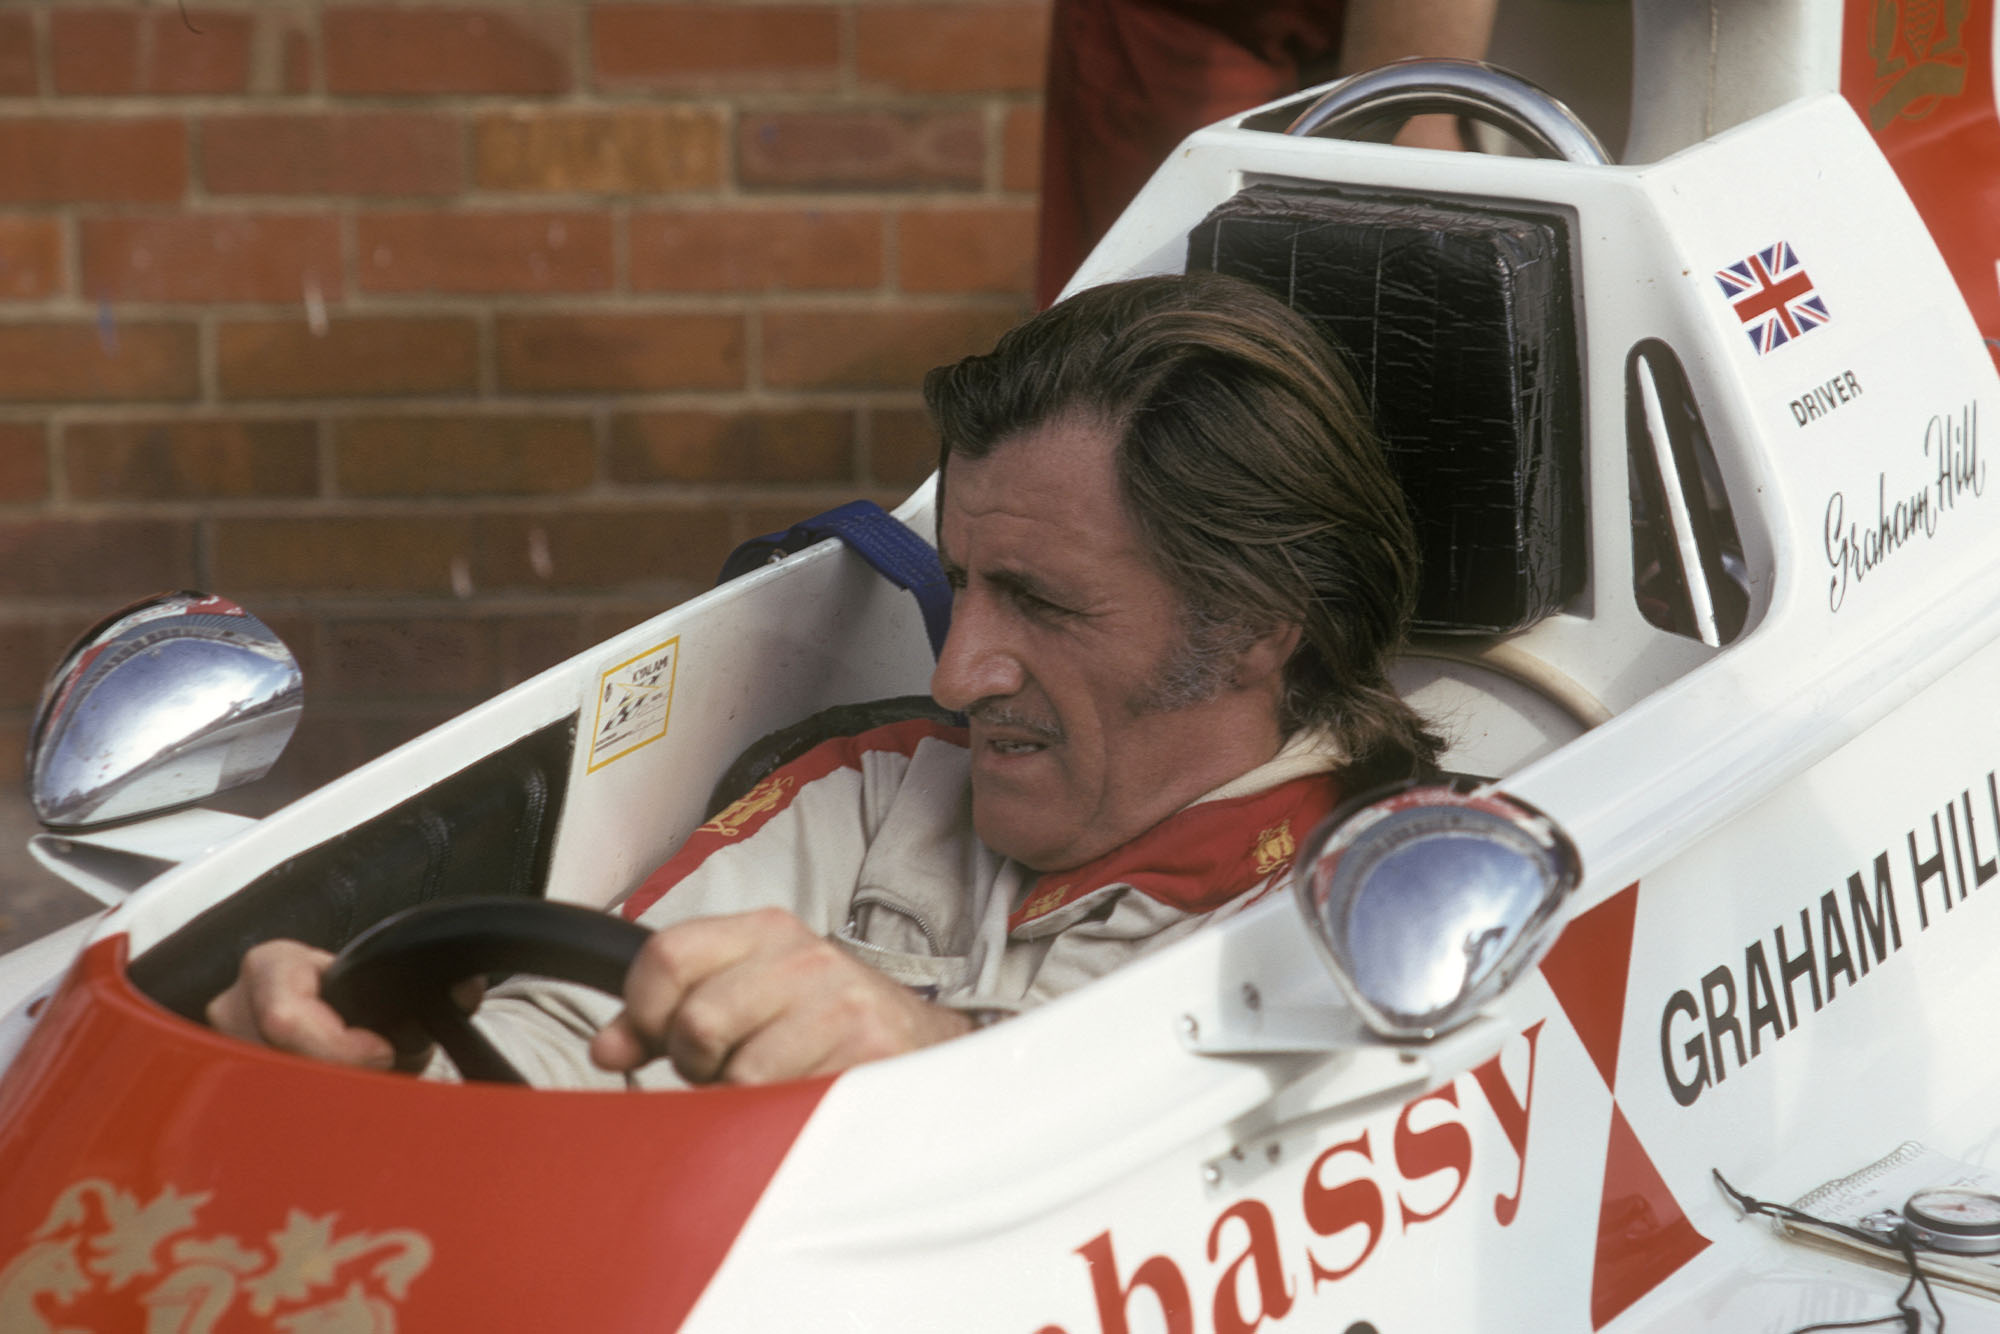 Graham Hill in his Lola Hill-Ford in the pits during practice for the 1974 South African Grand Prix in Kyalami. Photo: Grand Prix Photo